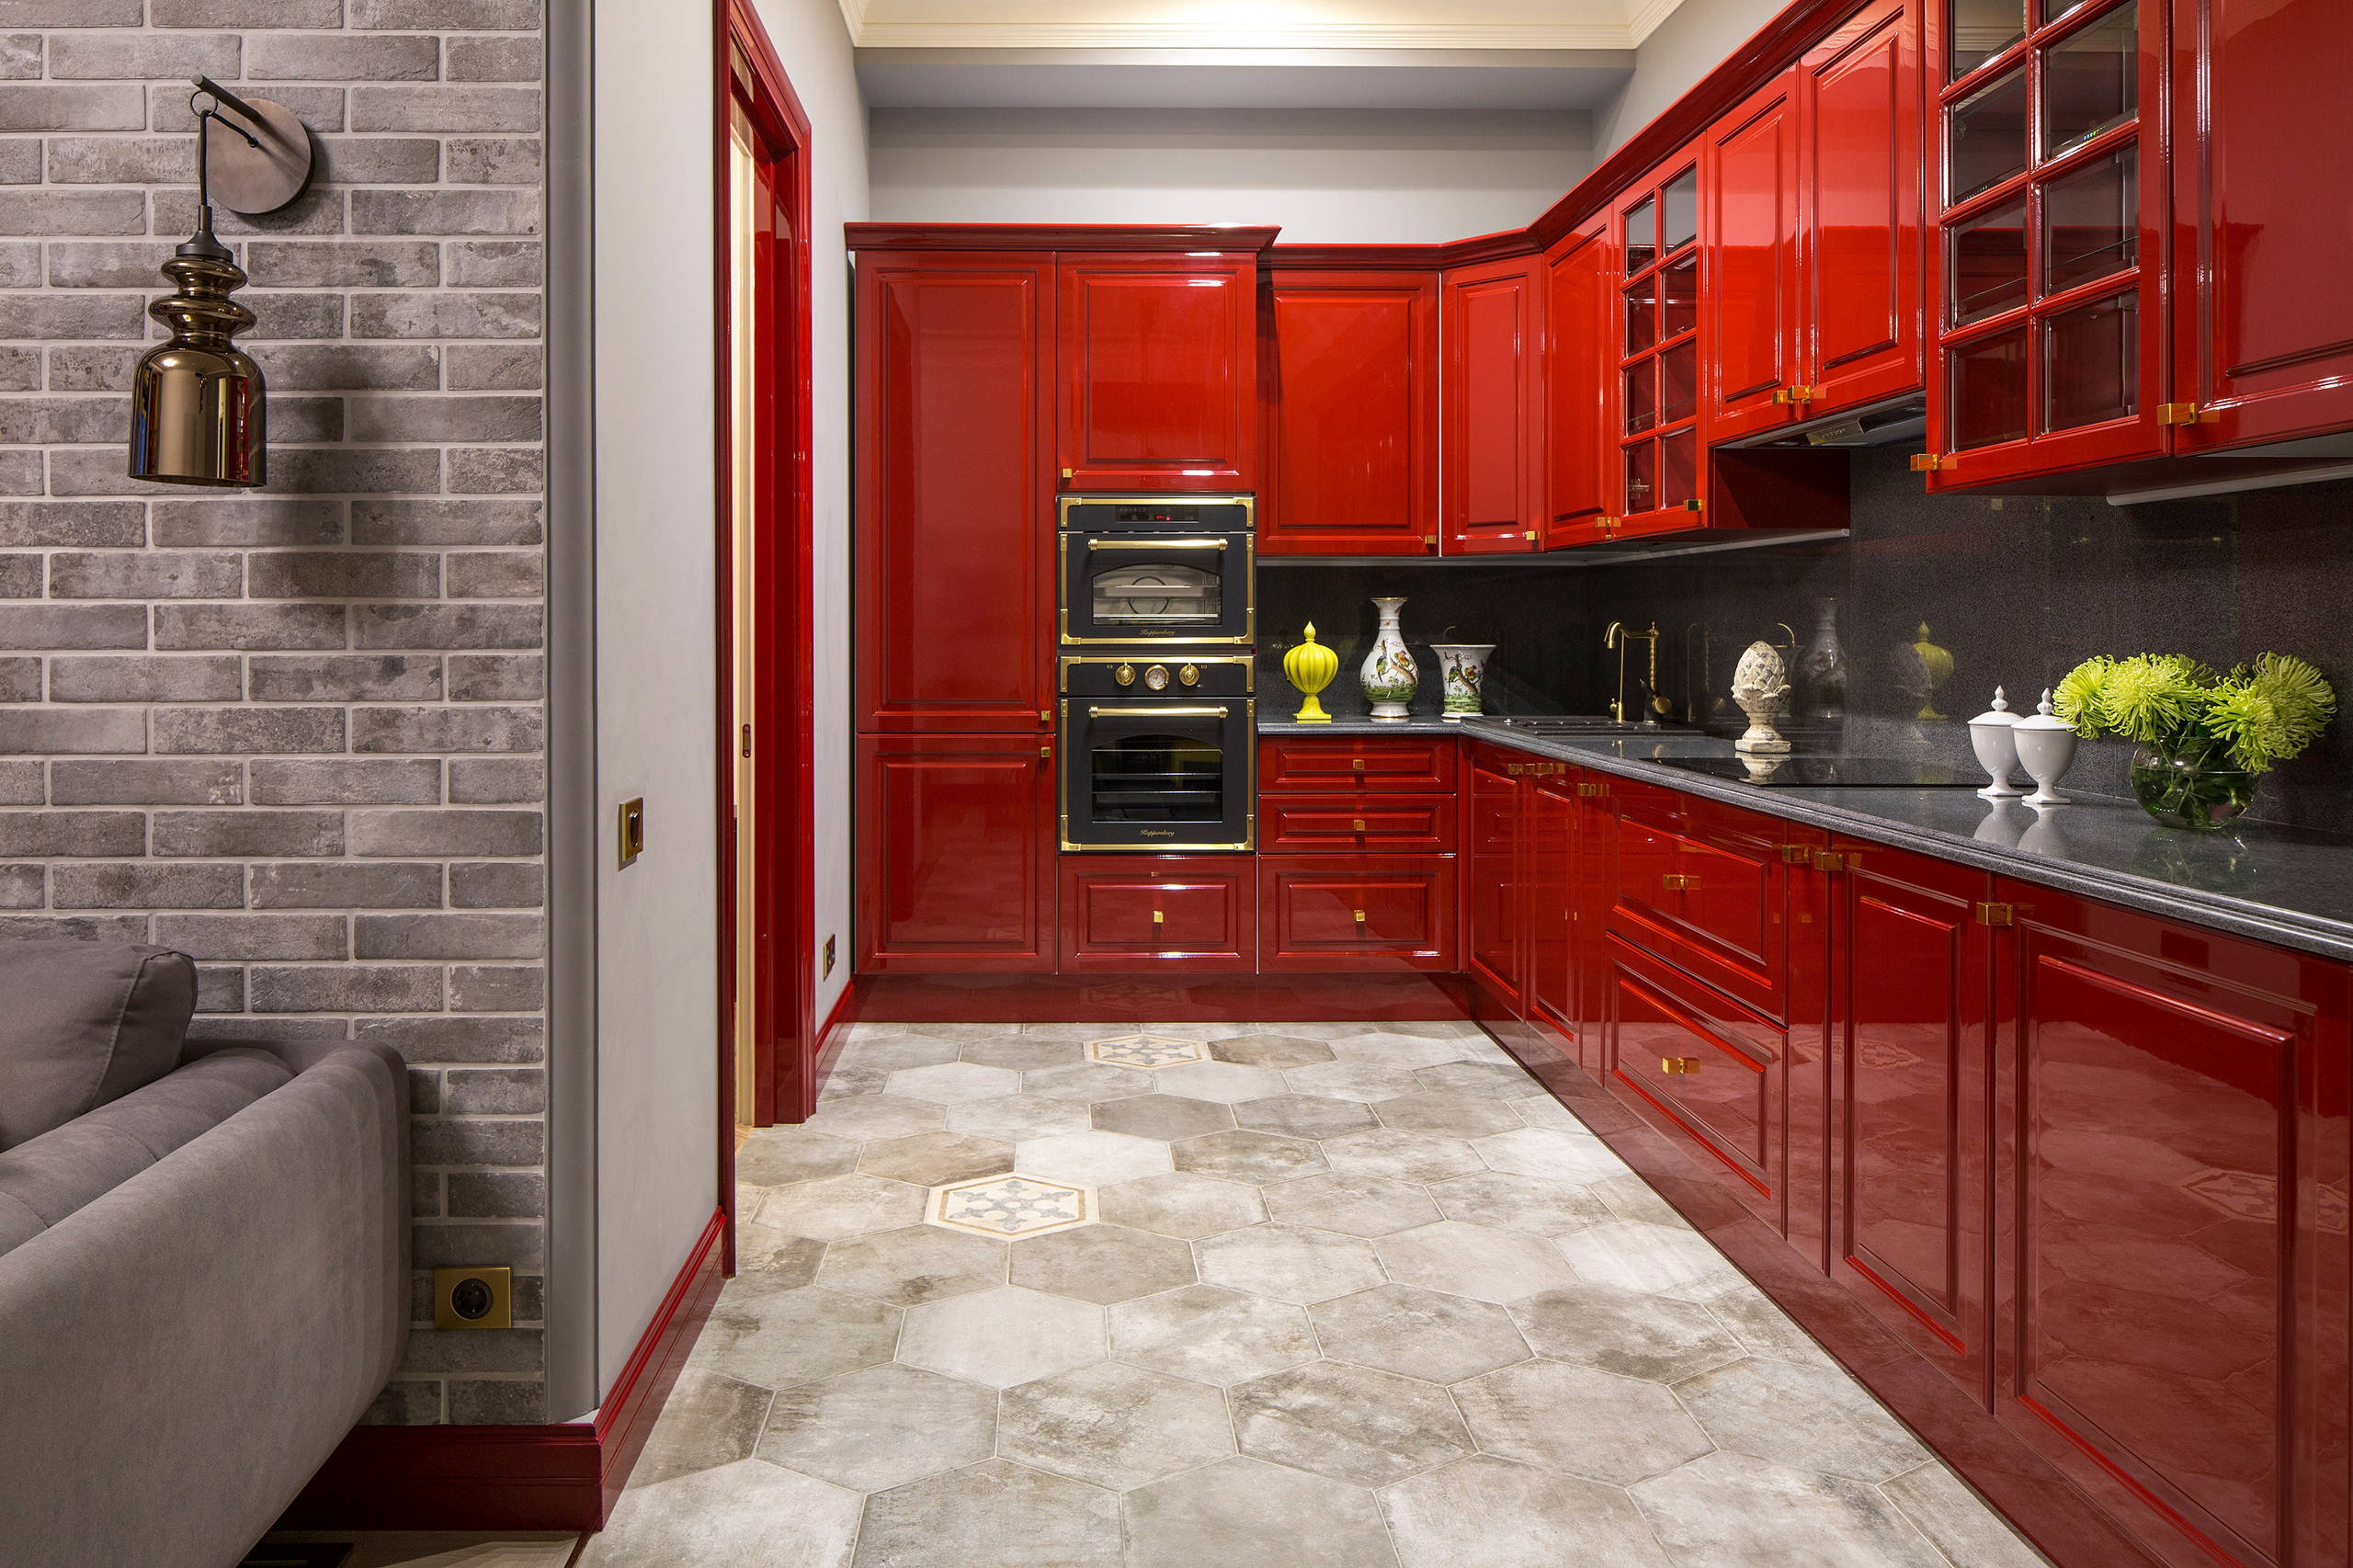 75 Beautiful Kitchen With Red Cabinets And Black Appliances Pictures Ideas May 2021 Houzz